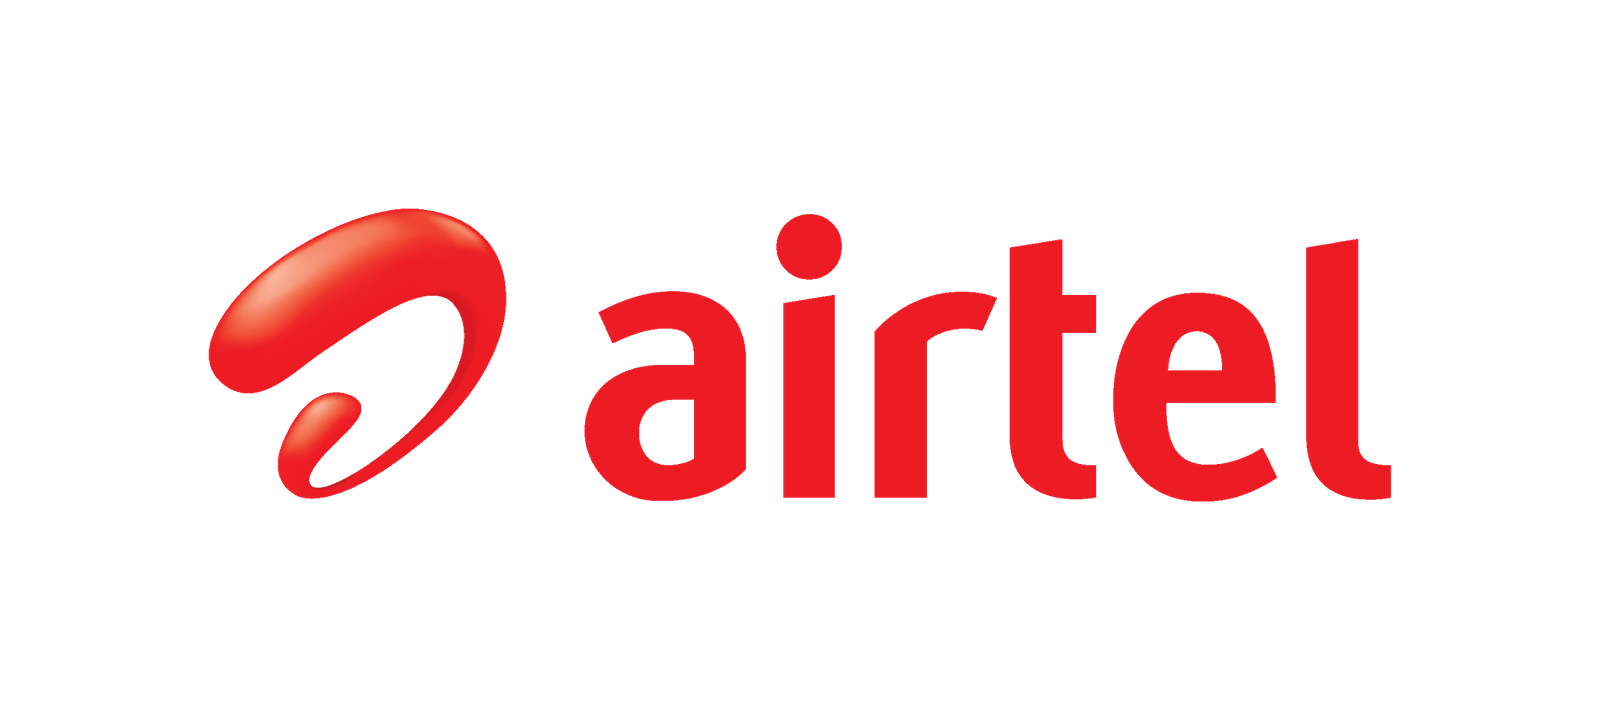 How To Free Transfer Balance Code From Airtel To Airtel on Prepaid Sim At BestShoppingSitesList